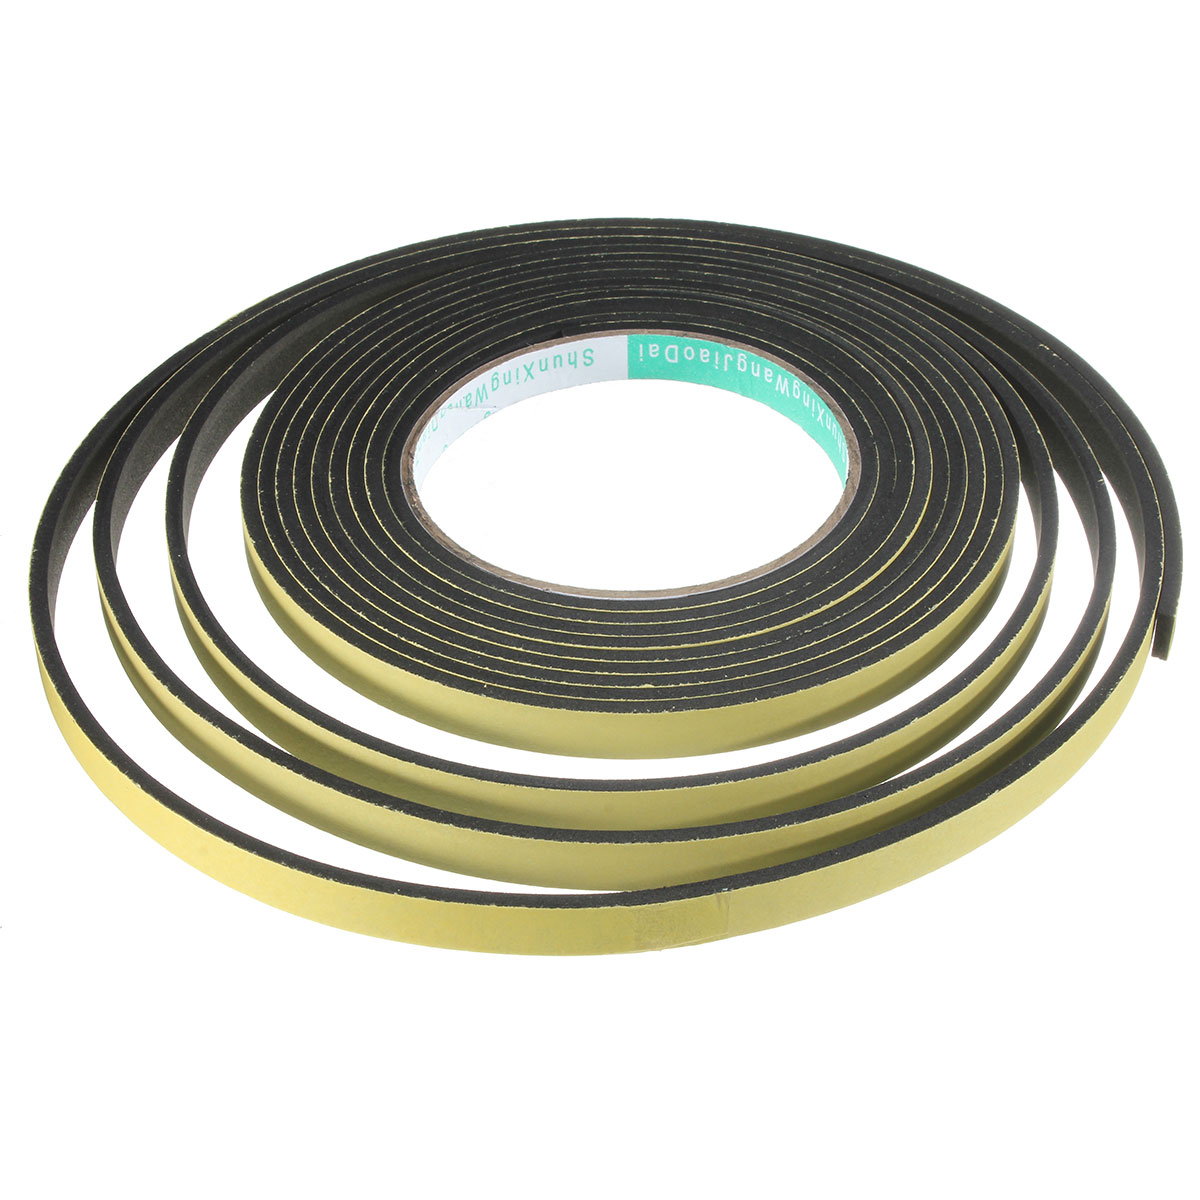 Newest 5m x 3x10mm Single Sided Adhesive Waterproof Weather Stripping Foam Sponge Rubber Strip Tape Door Seal Hot Sale ...